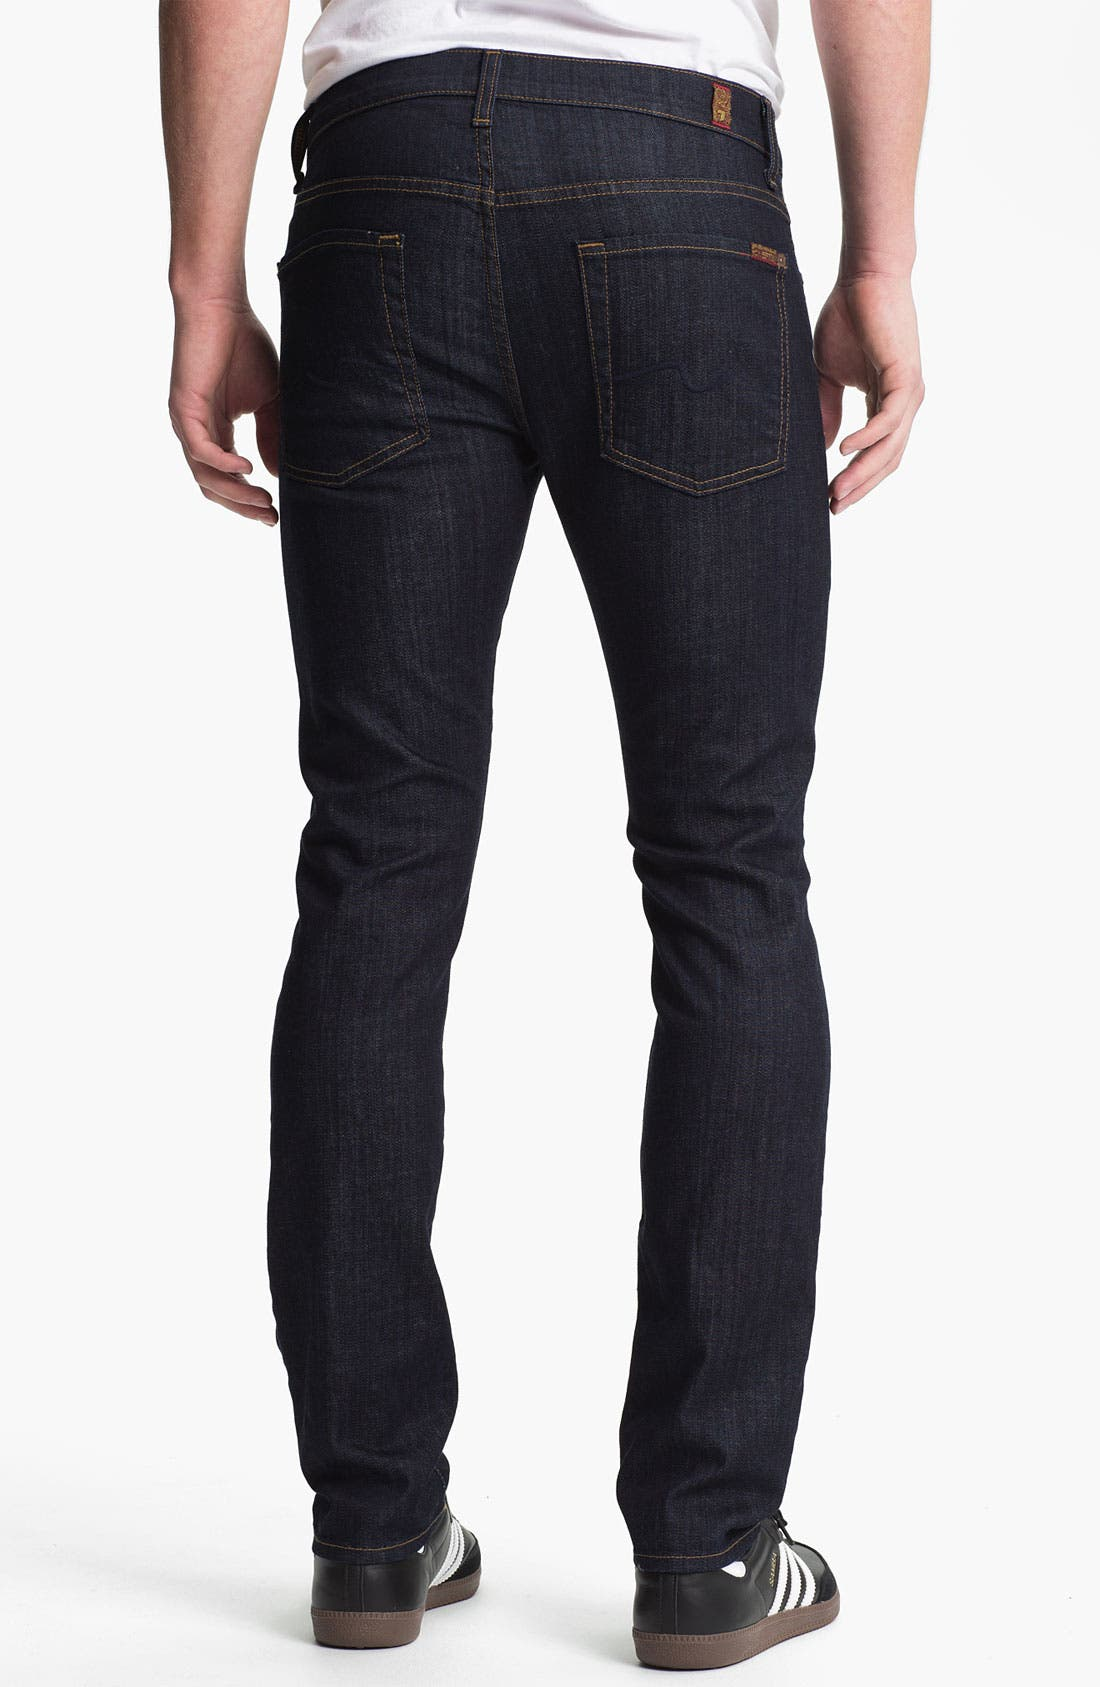 'Paxtyn' Skinny Fit Jeans,                             Alternate thumbnail 2, color,                             400